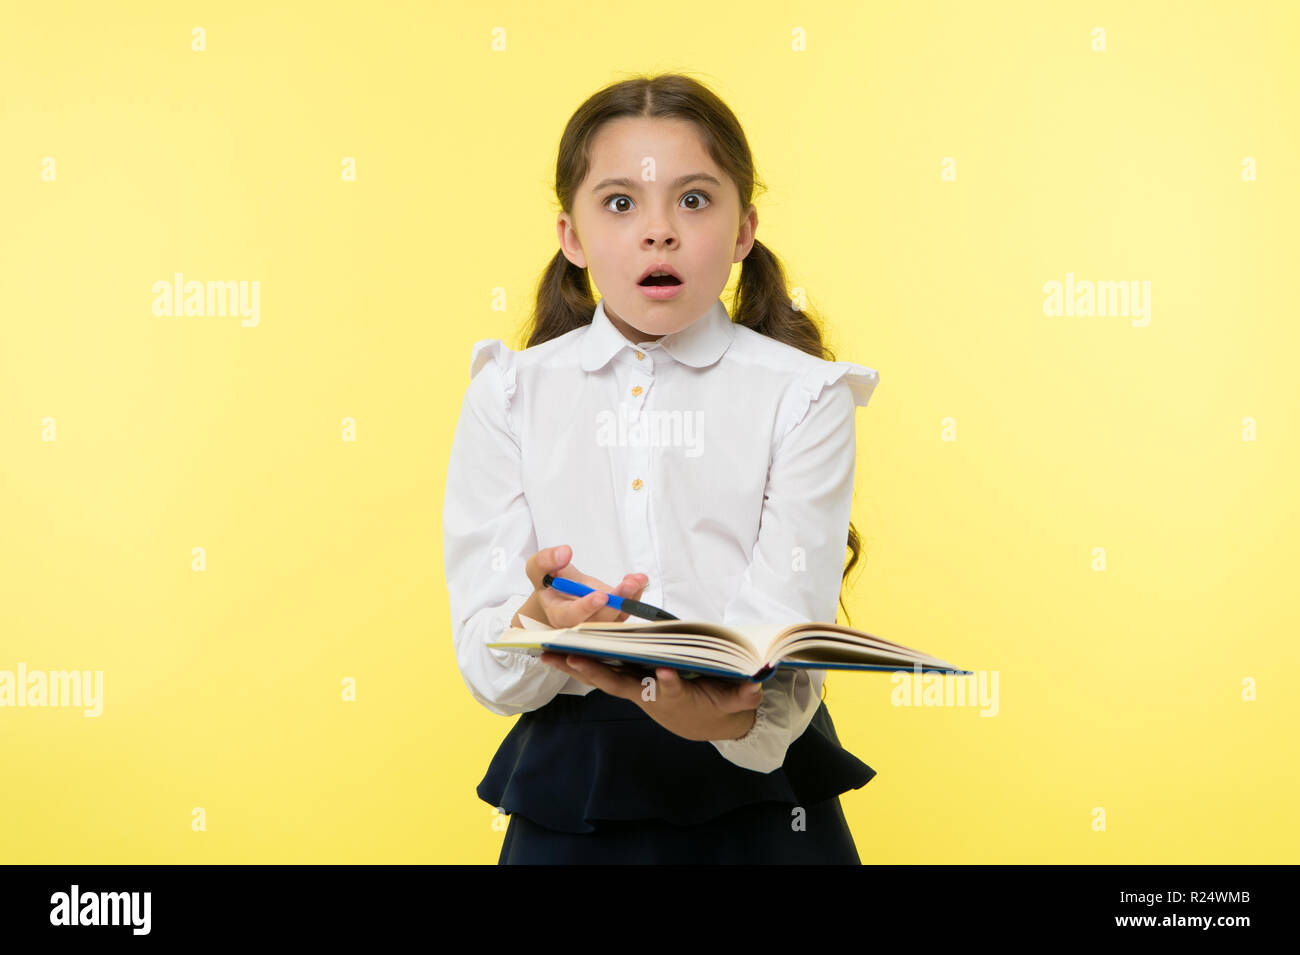 46088b1e3aef Girl cute schoolgirl in uniform hold book with information yellow background.  Pupil get information from book. Child wear school uniform prepare for  lesson ...